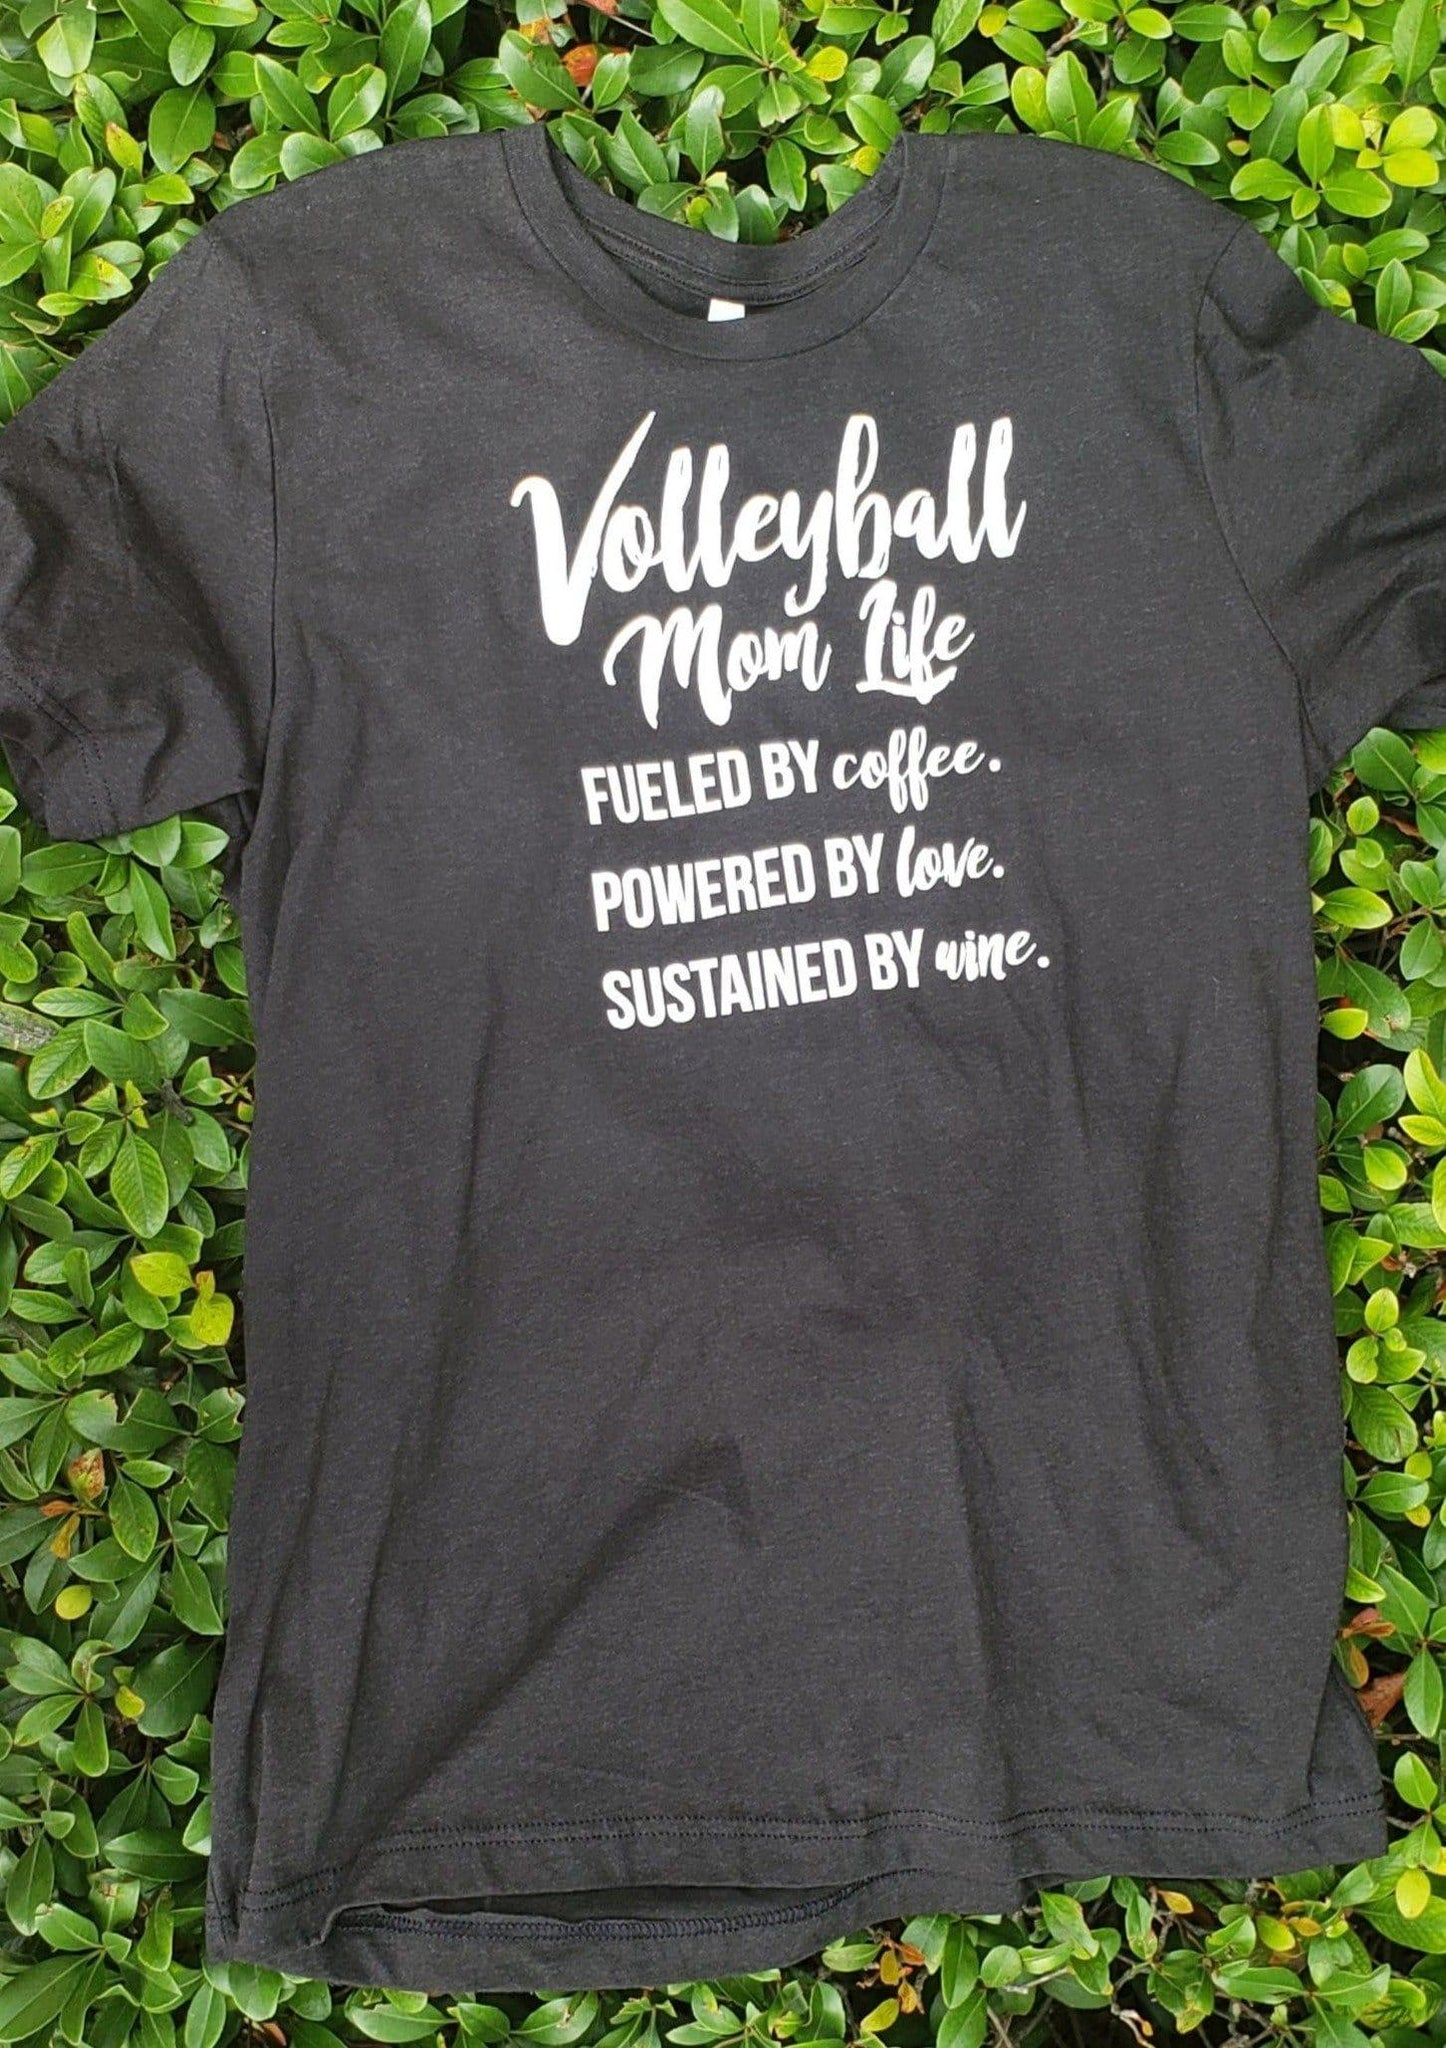 Volleyball Mom Life T-Shirt